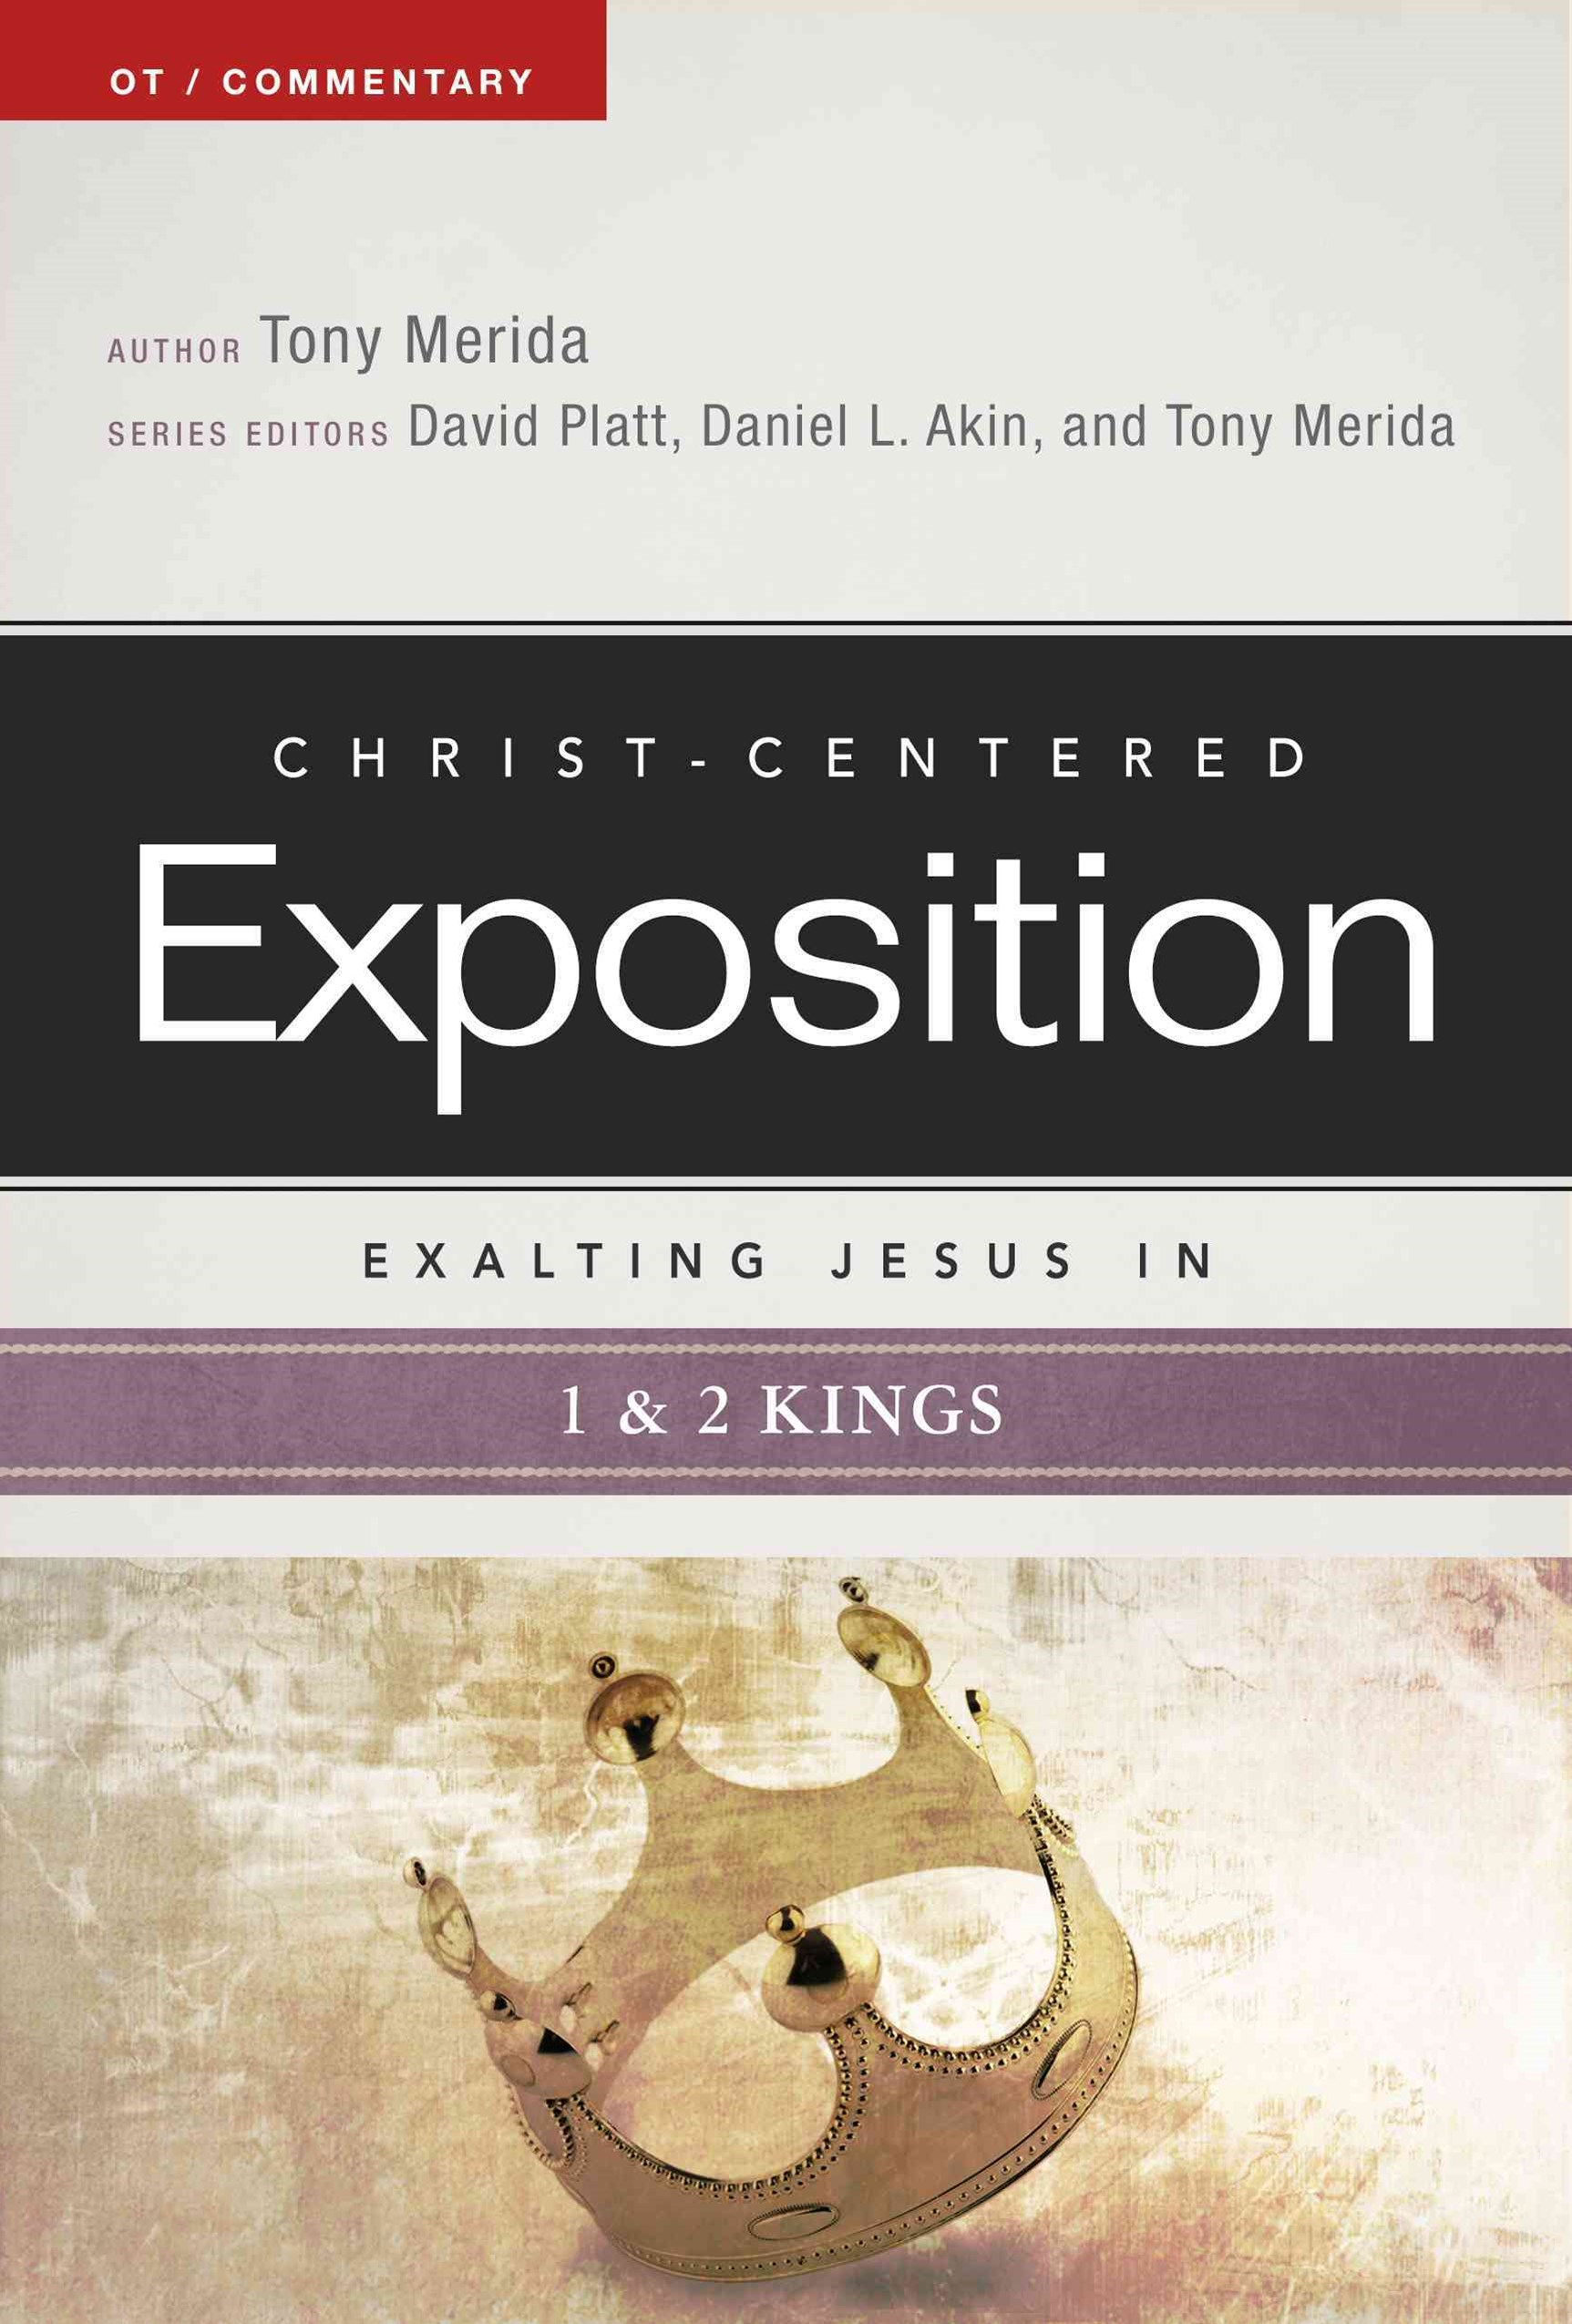 Exalting Jesus in 1 and 2 Kings